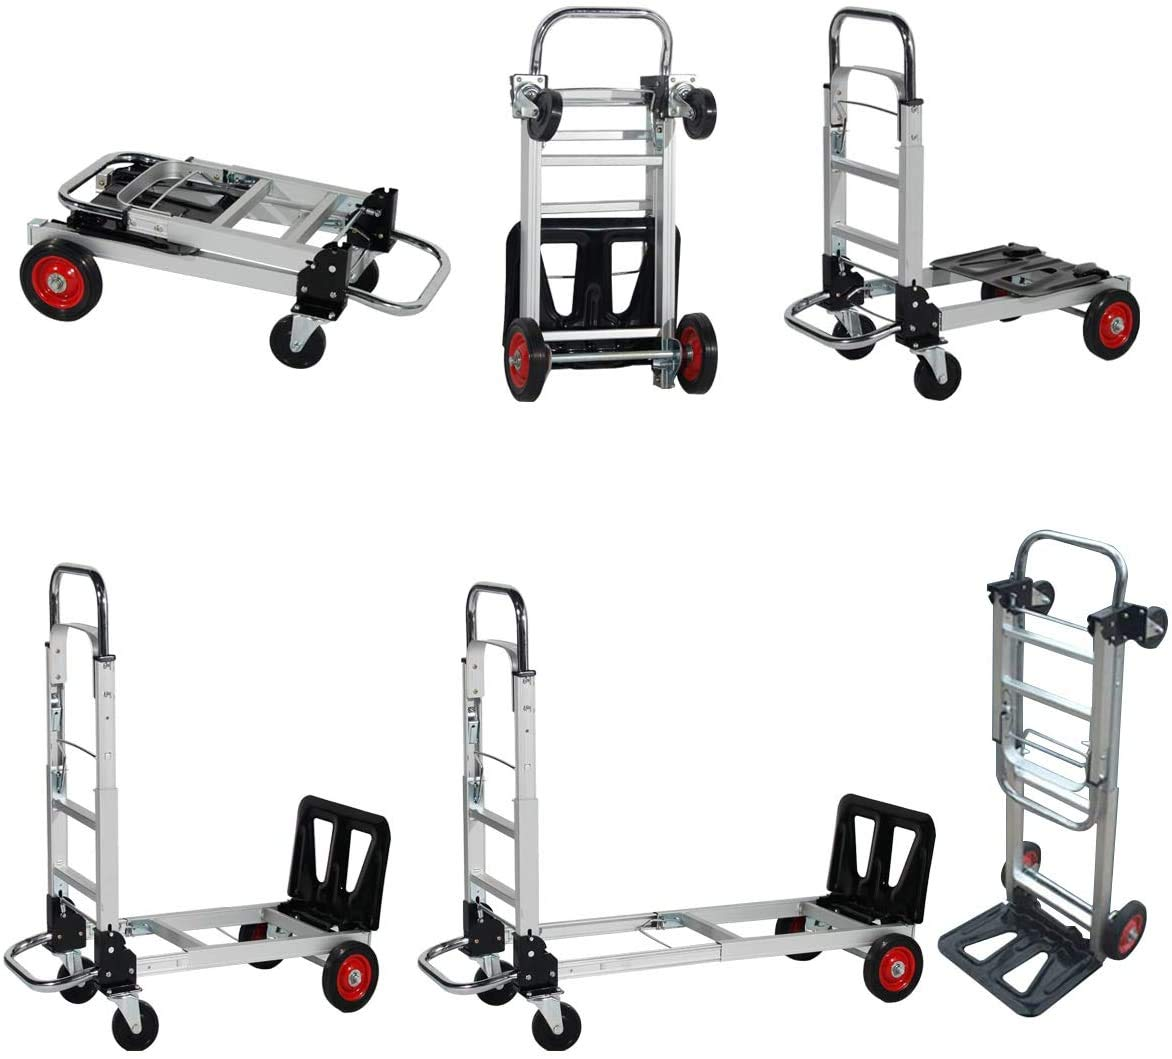 sogesfurniture Mini-Handtruck with 330 lbs Load Capacity, Folding Hand Truck, Moving Dolly Trolley, Gardening Lawn Leaf Bag Support Platform Truck Cart, BHUS-KT-2020A-N